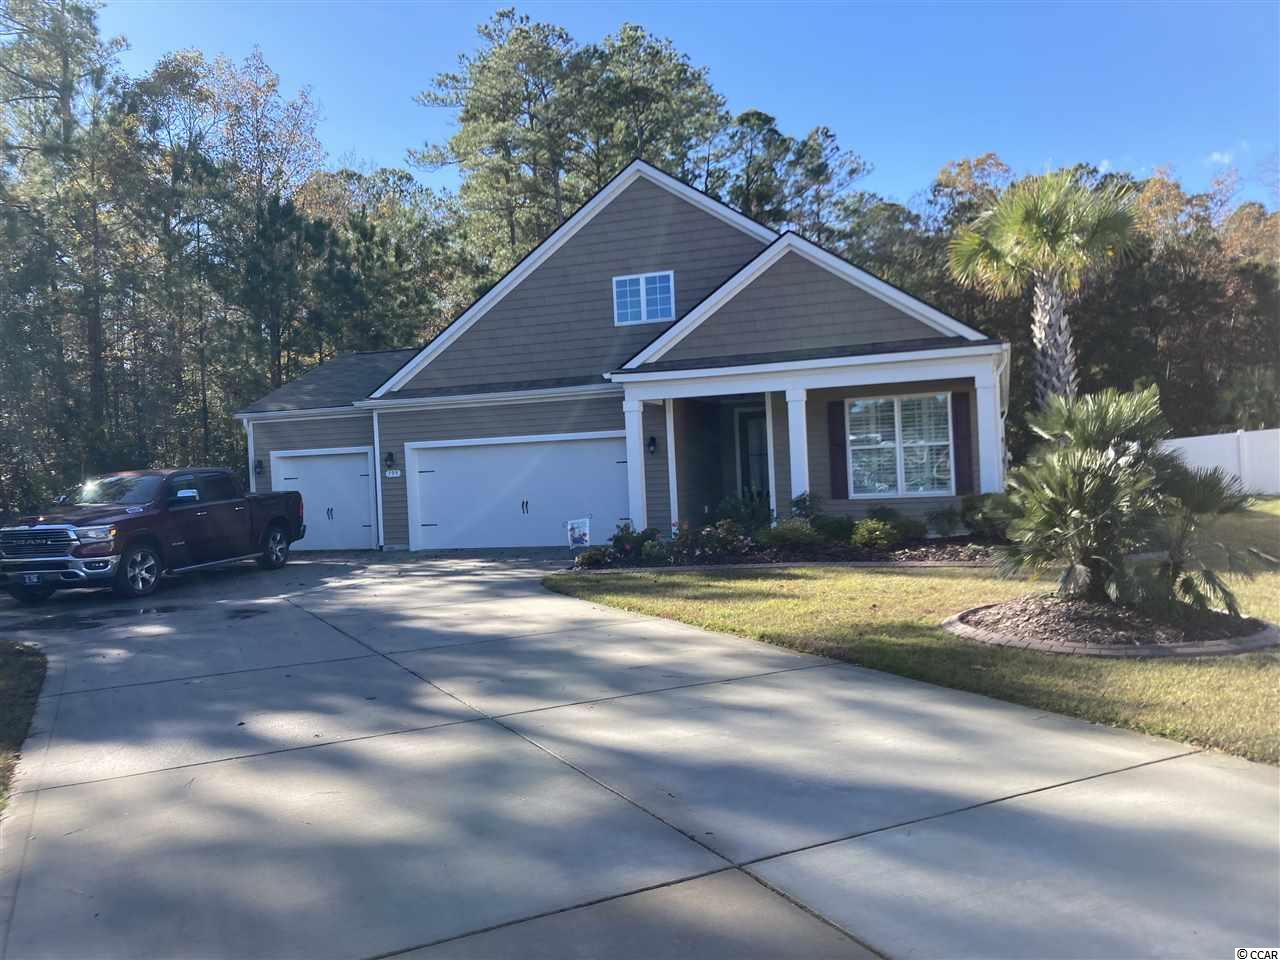 Welcome to this Outstanding 3/4 bedroom, 2 bath home in Carolina Crossing in the Little River area. The current homeowners had '11is home built by DR Horton in 2016. This spacious home with over 2100 heated s are feet features an open flowing floor plan hat is feat for entertaining. This home has 3BR's + a flex room that could be a 4th bedroom, man cave, craft area, etc. As you enter the home the two guest bedrooms will be on your right with a guest bathroom. The laundry area and flex room will be on the left, along with access to the 3-CAR GARAGE. In the main ' vin g area you'll find the great room area, kitchen and dining areas. Off he family room, there is a Sunroom option current used an an office. The kitchen features upgraded level 2 cabinets with bottom cabinet pull out trays, a pots and pans drawer, pendent lighting, a granite countertops. The spacious master bedroom has a tray ceiling, and the large master bath also has a tray ceiling, step in shower and linen closet. All bedrooms have carpeting, and the main living area, including the flex room all have engineered hardwood flooring.  All bathrooms, the kitchen, and  the sunroom have ceramic tile flooring.  The plantation shutters roughout the home are included in the sale. There is also a screened porch with EZ Breeze windows, and decorative concrete edging around all of the garden areas. Outside a large  patio runs across the rear of the home, and features very nice landscaping to include several palm trees, evergreen plantings, etc. The left side and rear of the very private backyard is surrounded by a conservation area. There is no flood insurance required for this property. All measurements are approximate and not guaranteed . Buyer is responsible for verification.